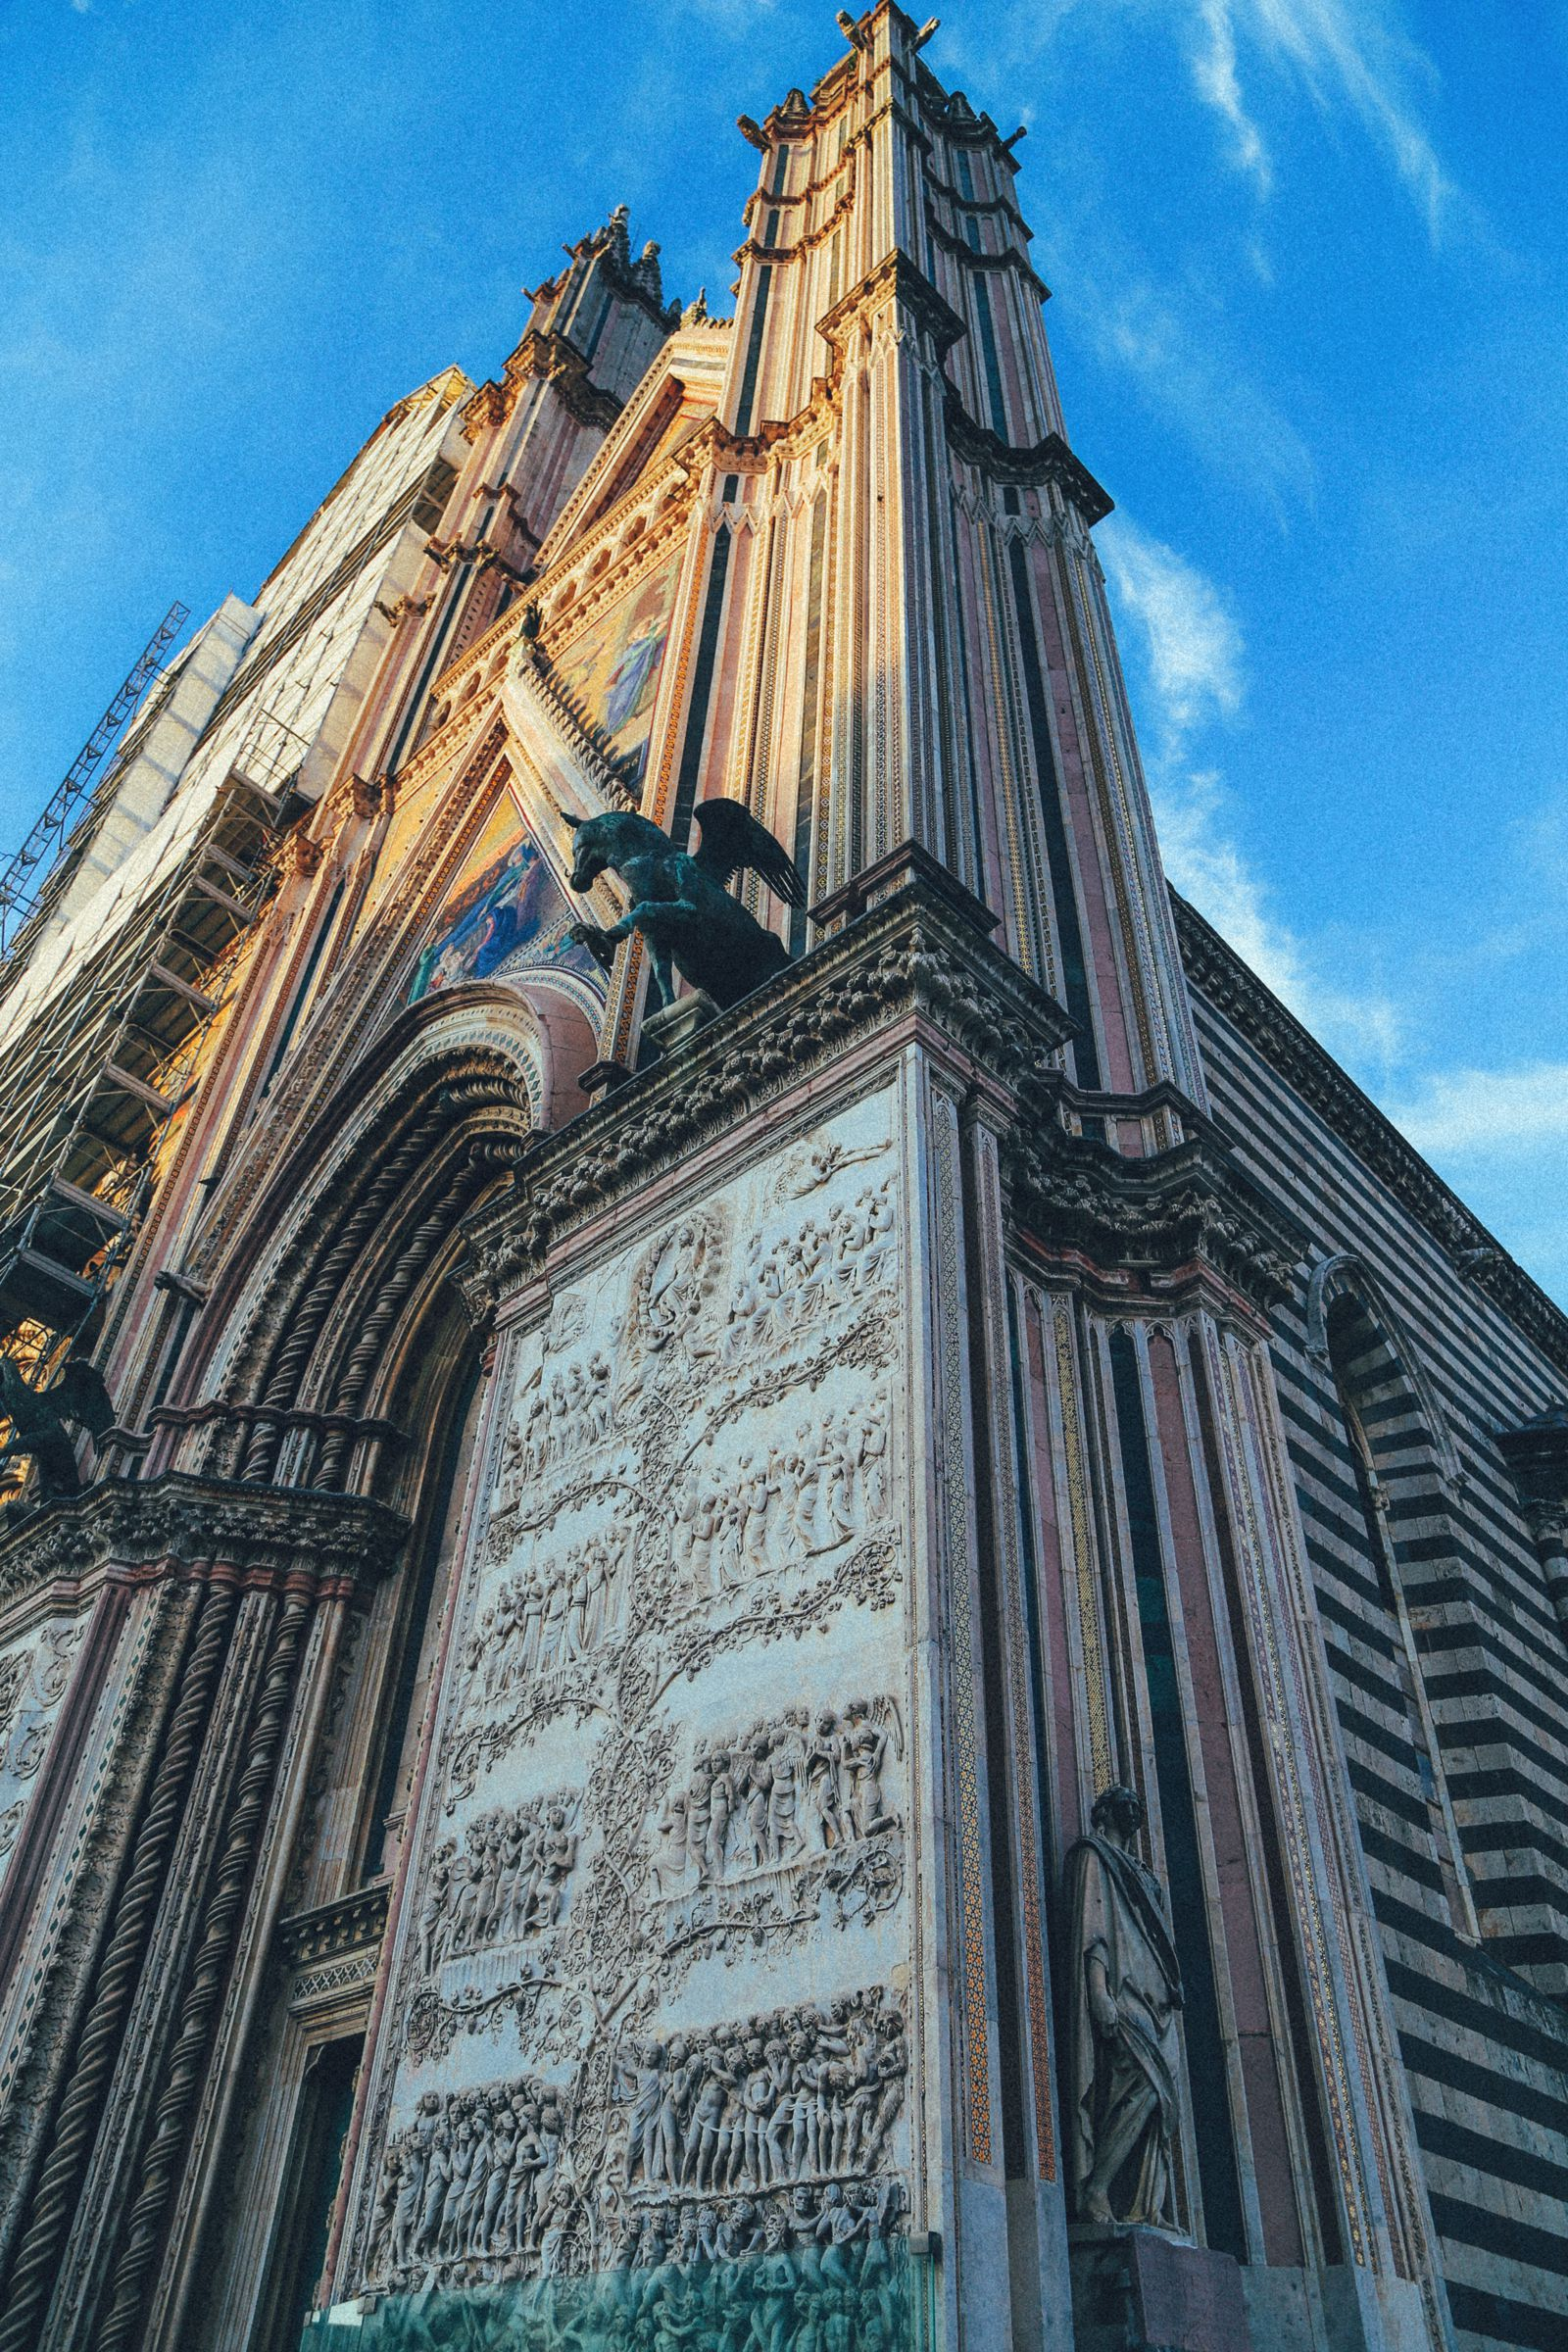 Orvieto - The Most Dramatic City In Europe (13)